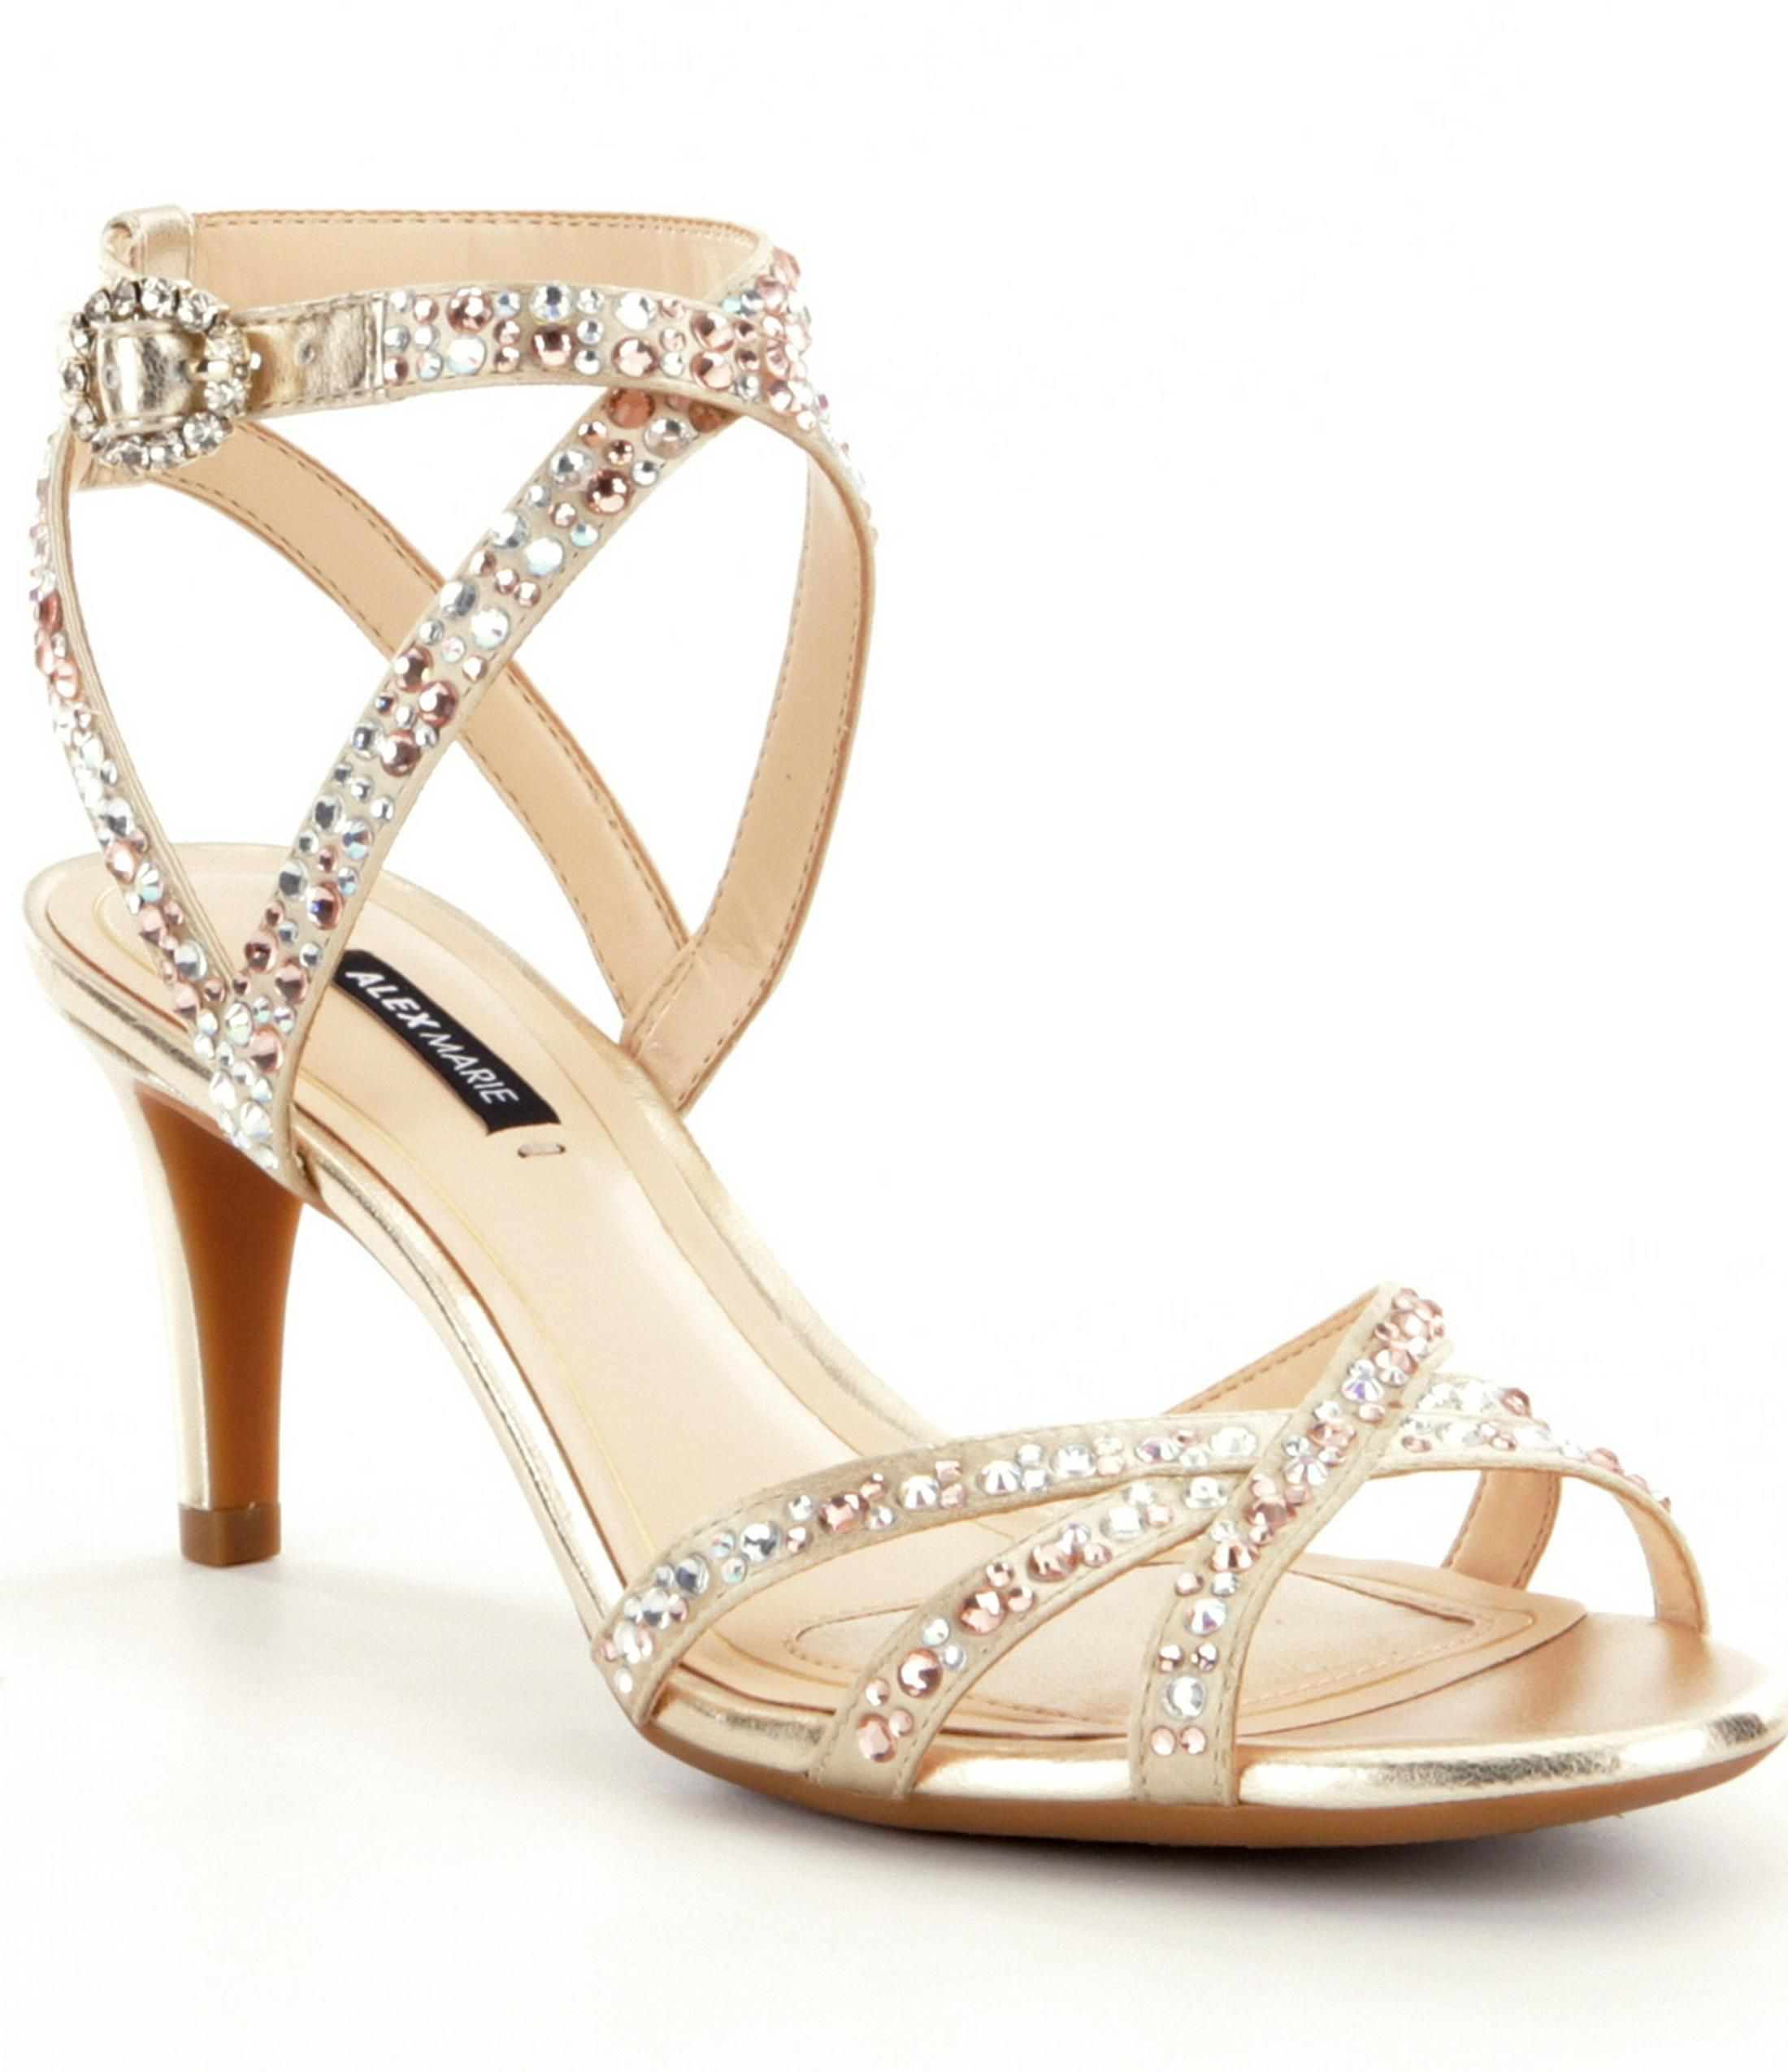 8 Enamour Gold Dress Shoes For Wedding - Fashion and Wedding